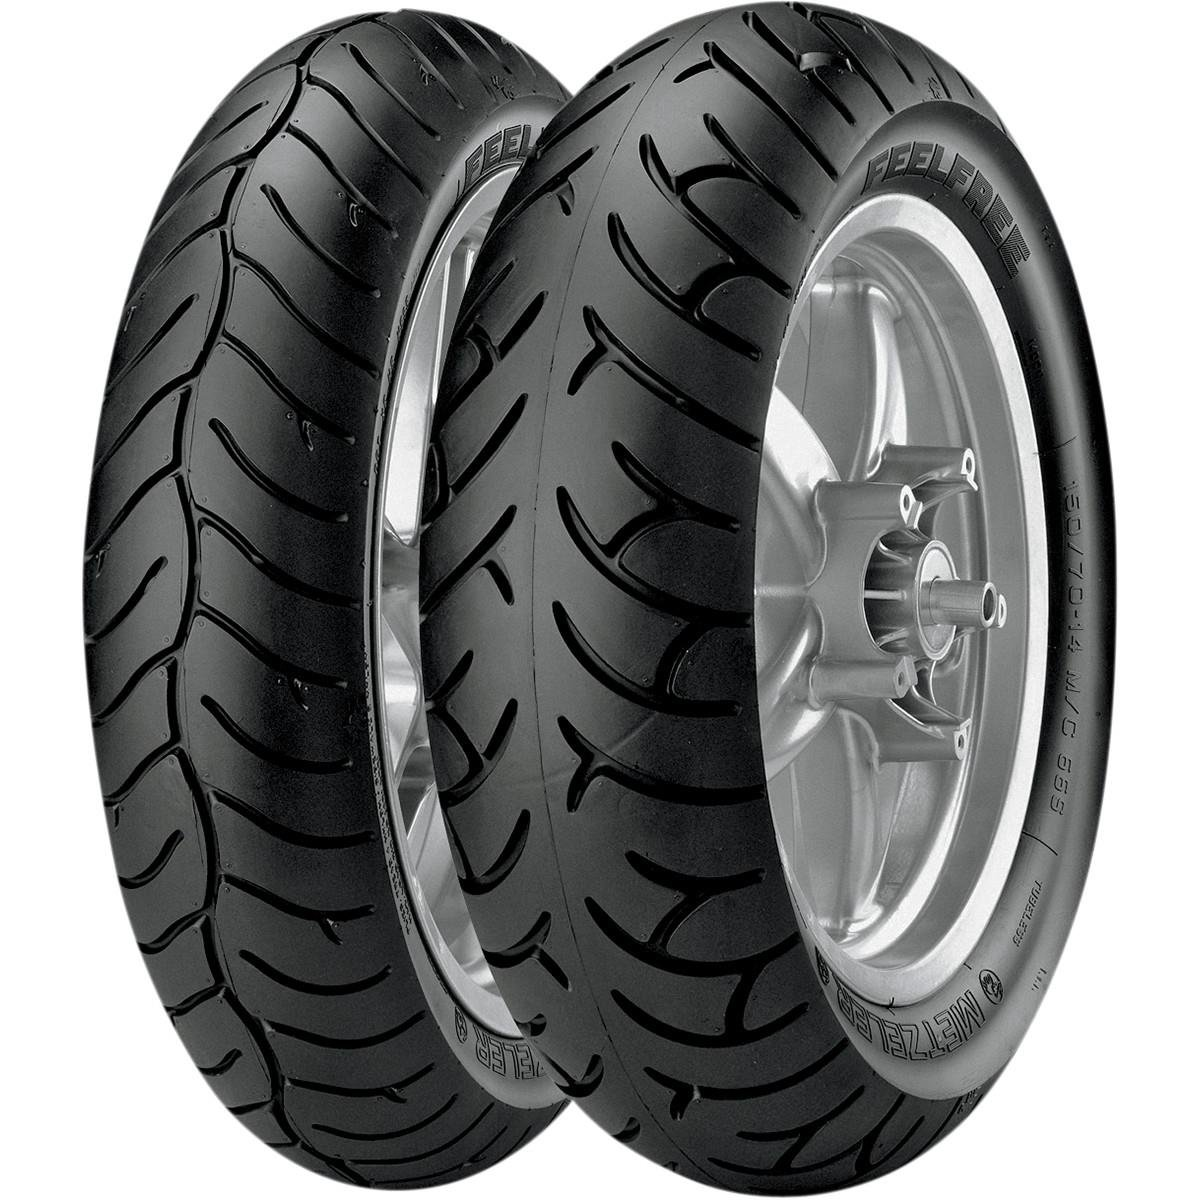 Metzeler Feelfree Tire - Front - 120/70R-15 , Position: Front, Tire Size: 120/70-15, Tire Type: Scooter/Moped, Rim Size: 15, Load Rating: 56, Speed Rating: H, Tire Construction: Radial 1816700